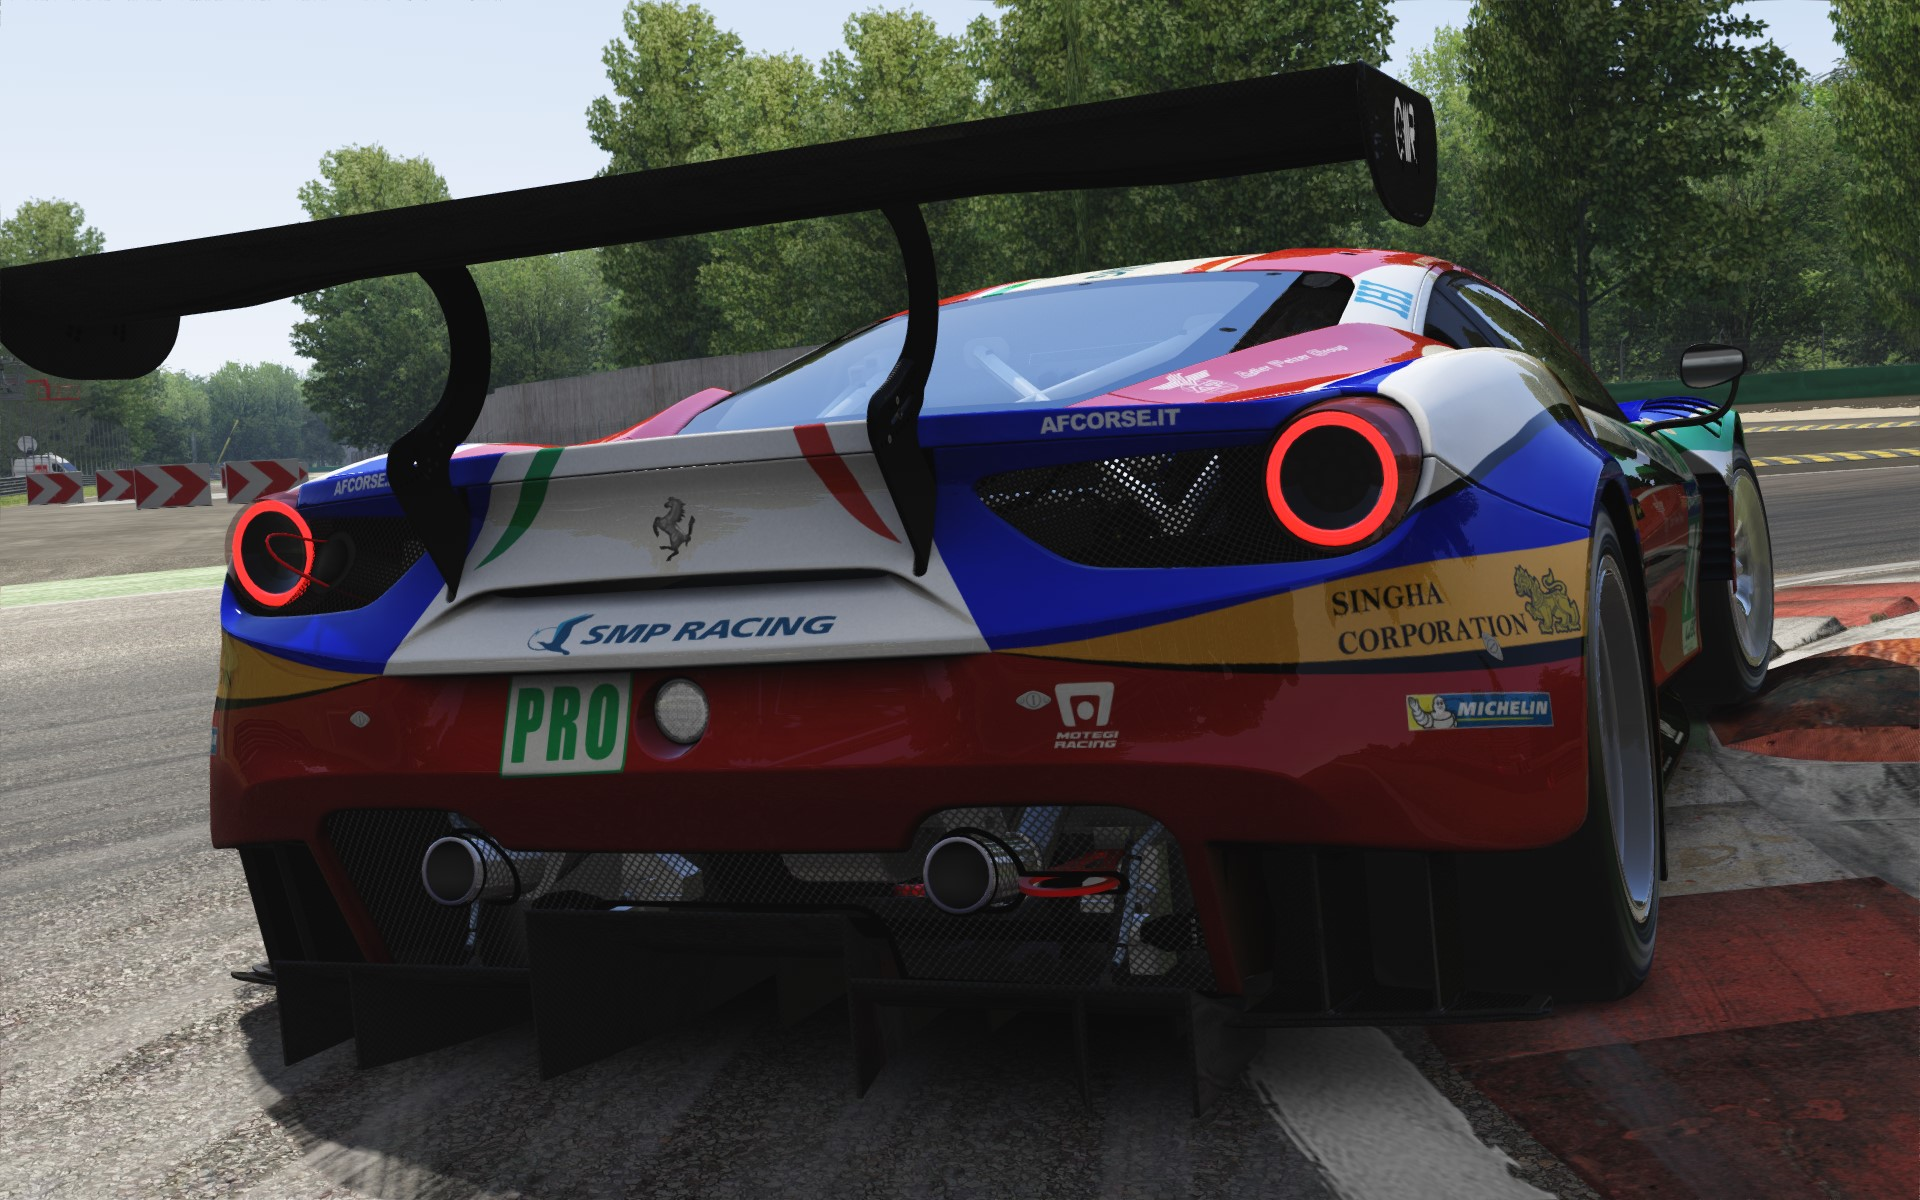 Screenshot_ks_ferrari_488_gt3_monza_7-8-116-13-2-23.jpg